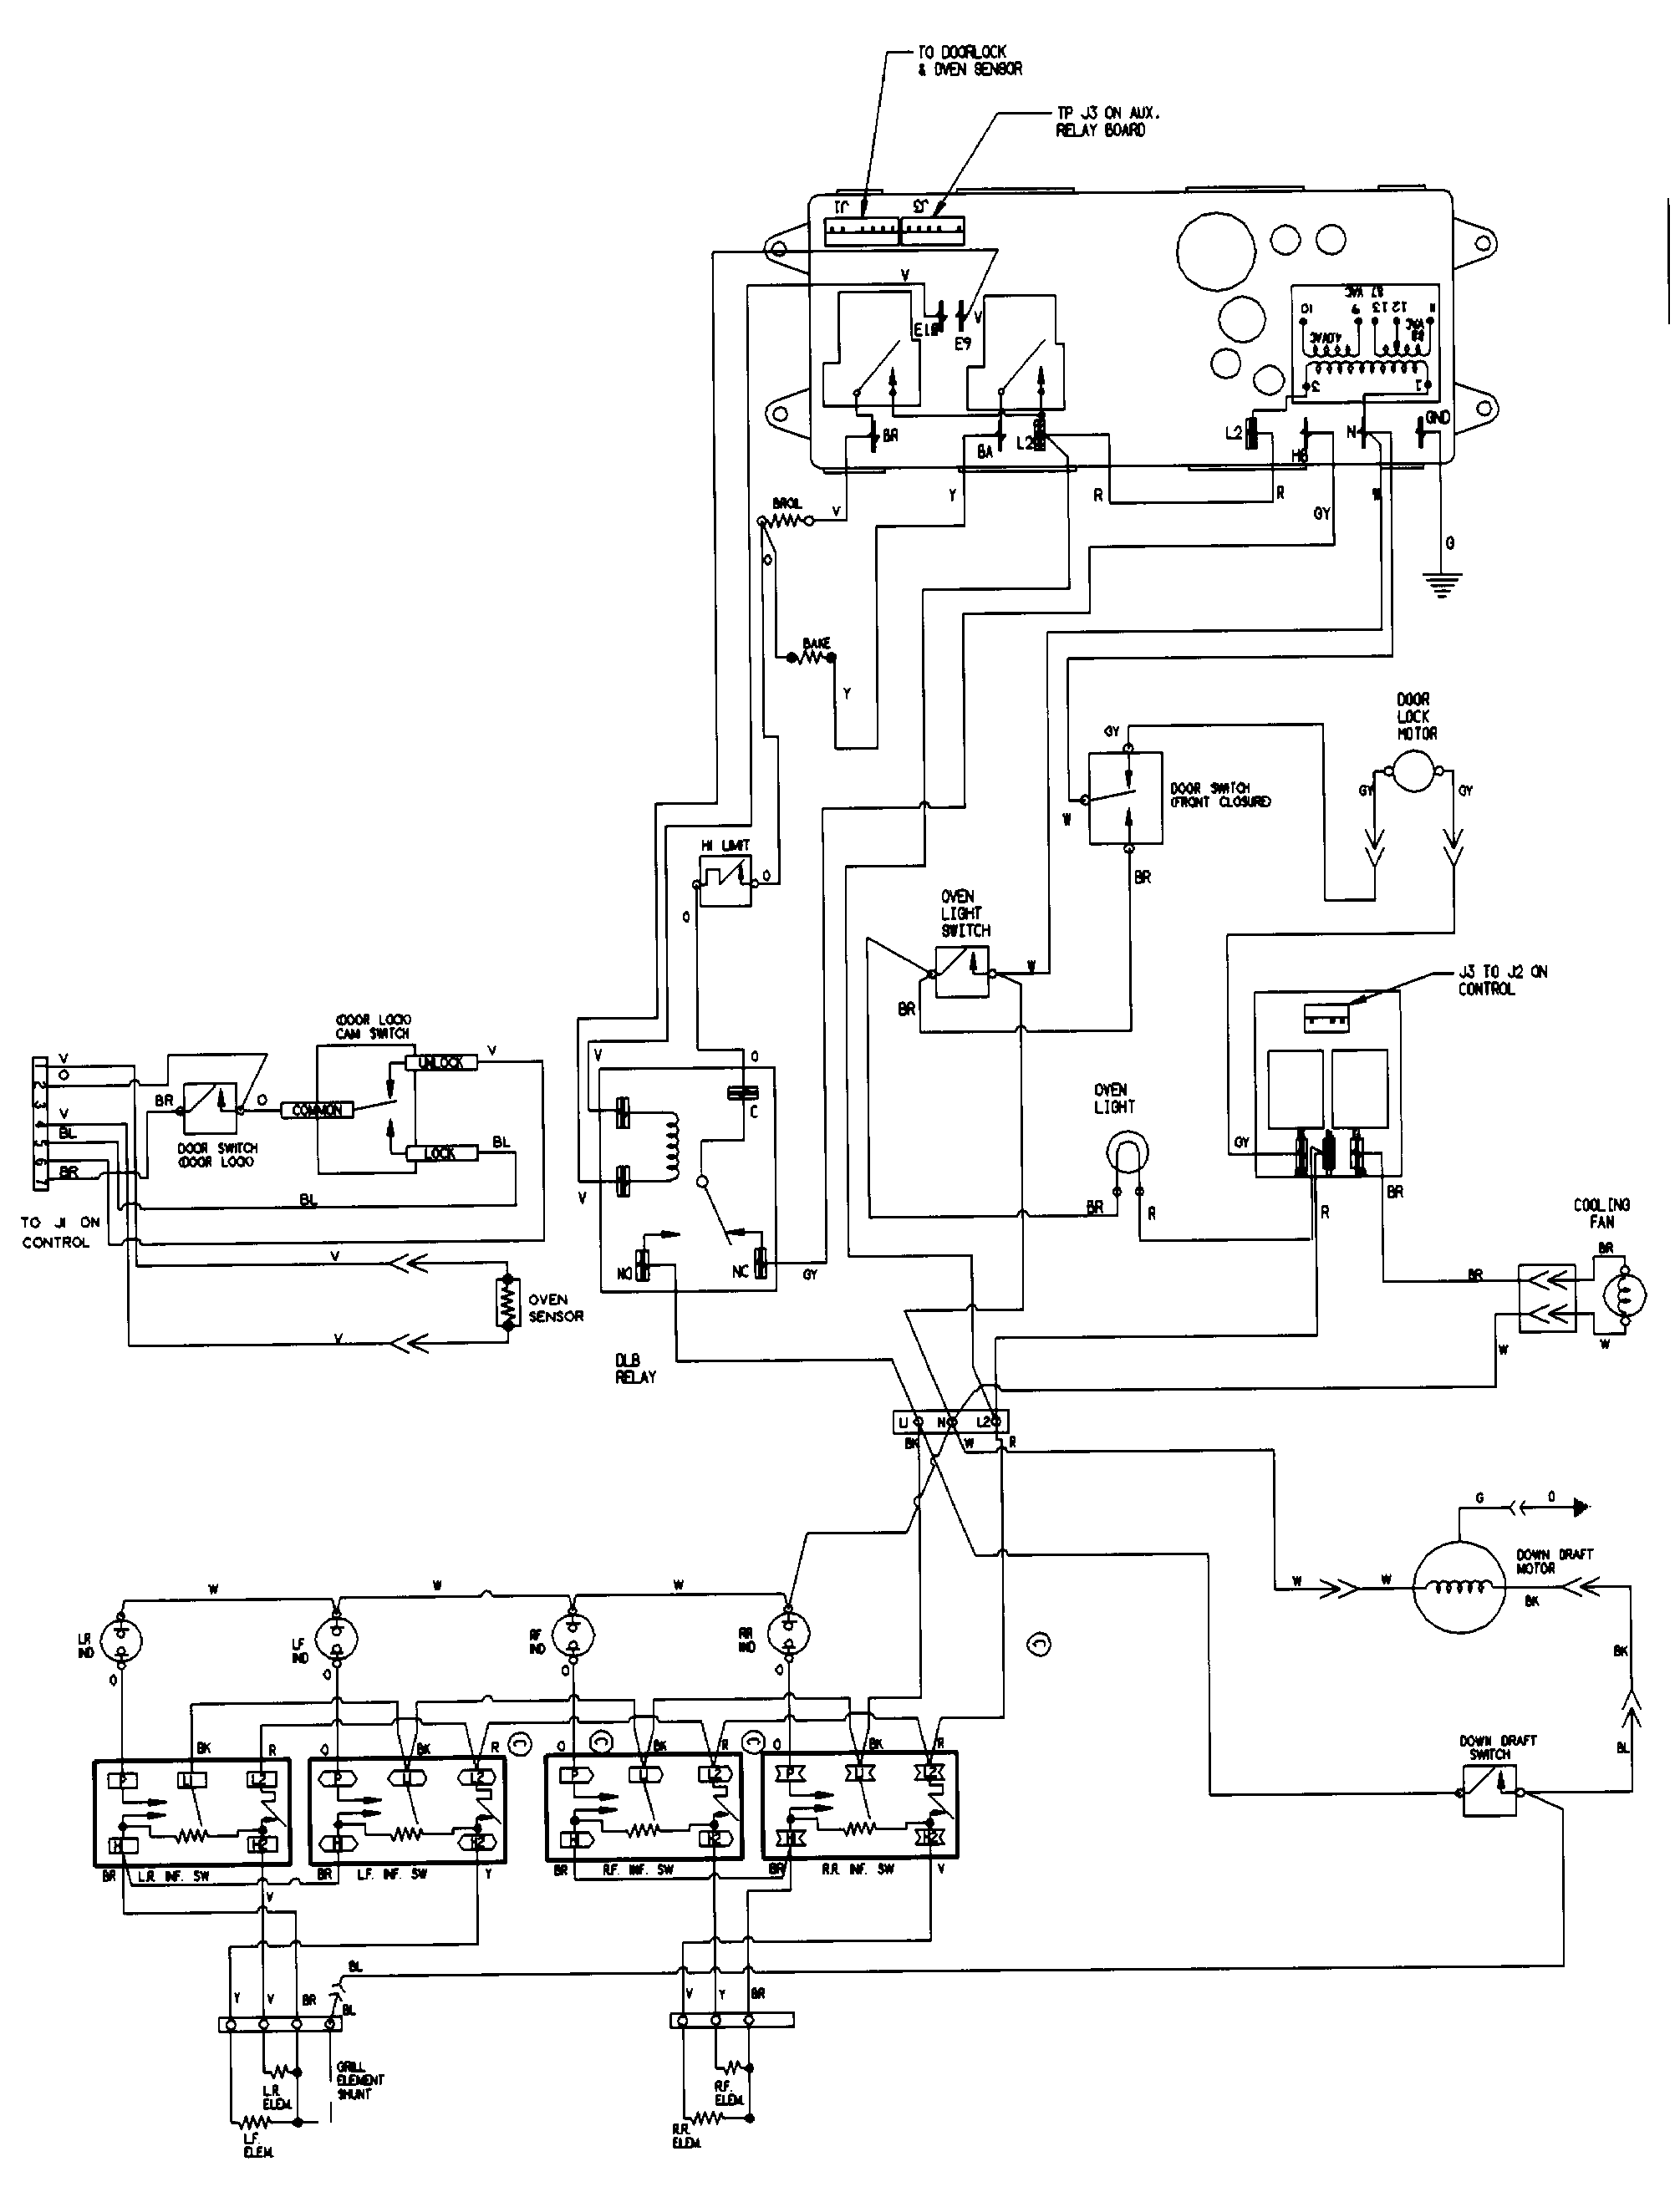 Maytag Centennial Dryer Wiring Diagram Microwave Electrical Wire Data Schema Sve47100 Electric Slide In Range Timer Stove Schematic